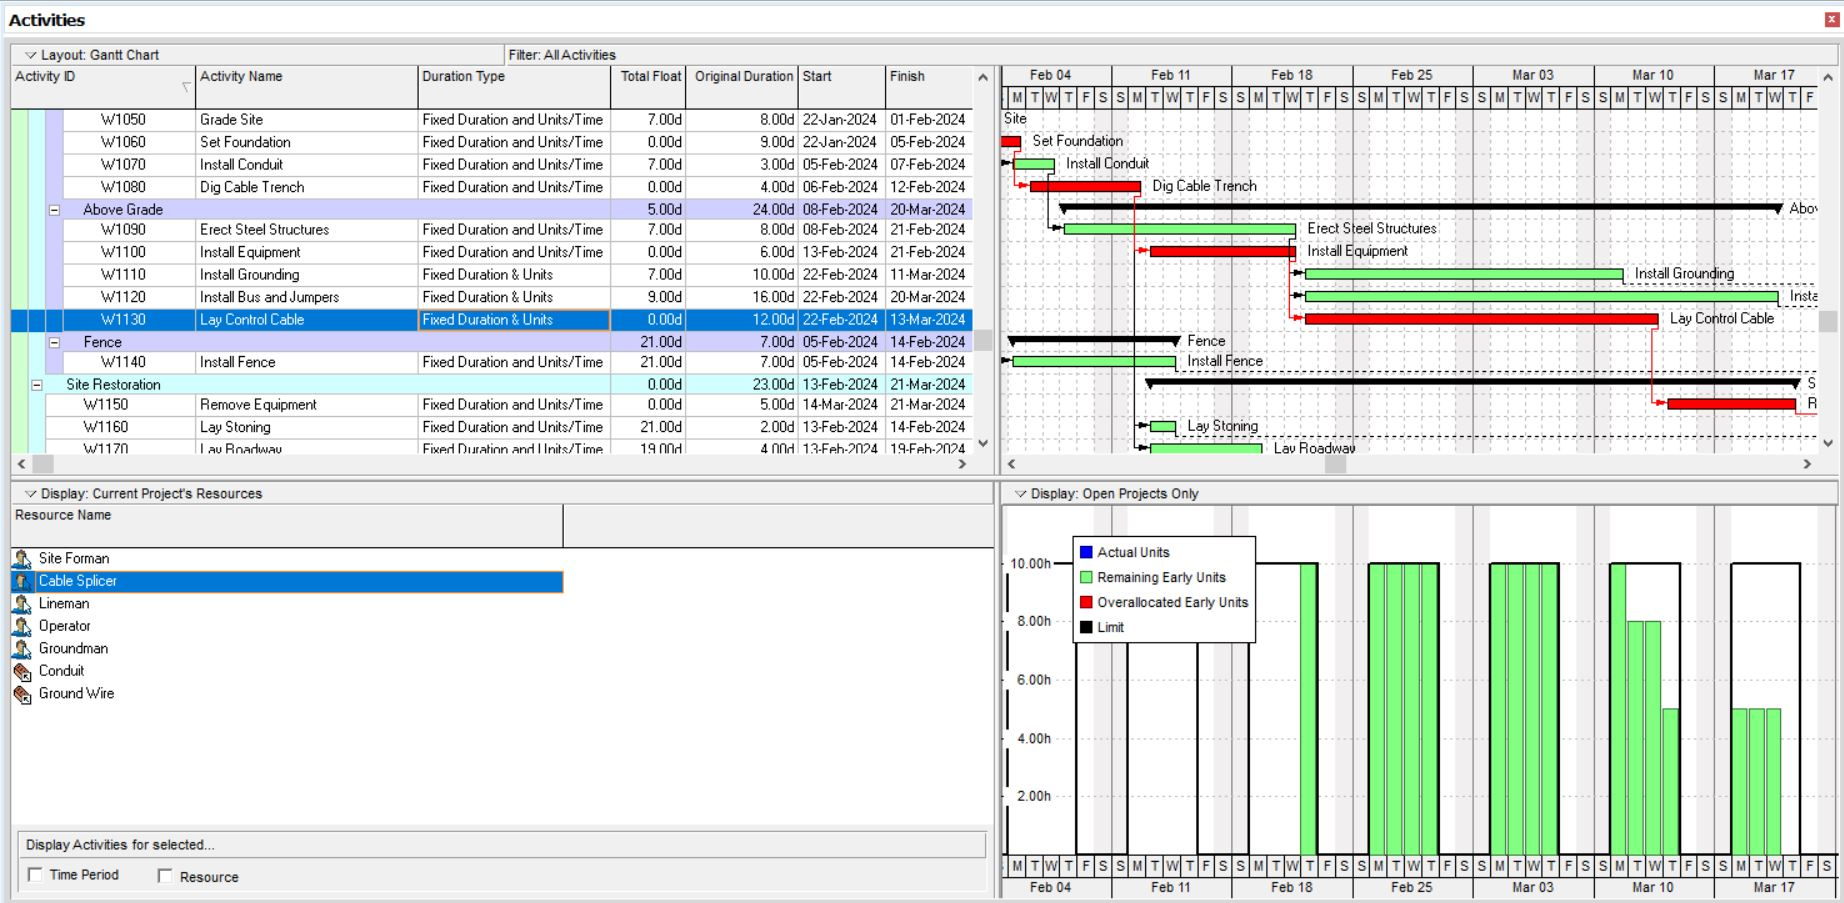 Mitigating Resource Over-Allocation In Primavera P6 By Reducing Daily Effort